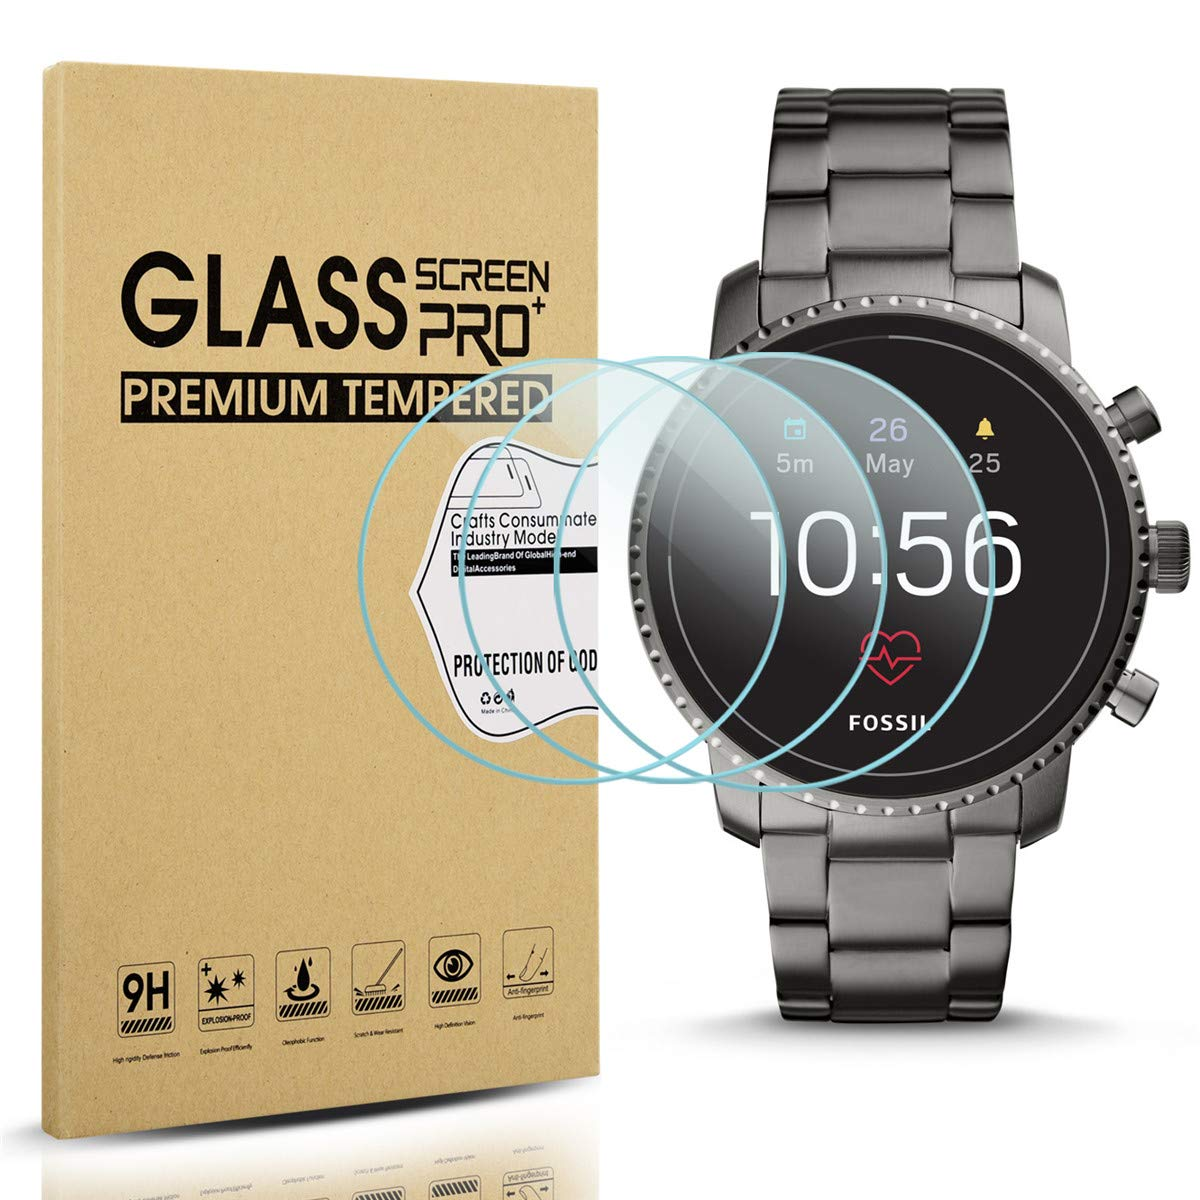 Diruite 3-Pack for Fossil Q Explorist HR Gen 4 Screen Protector Tempered Glass for Q Explorist HR Smartwatch [2.5D 9H Hardness][Anti-Scratch][Optimized Version] - Permanent Warranty Replacement